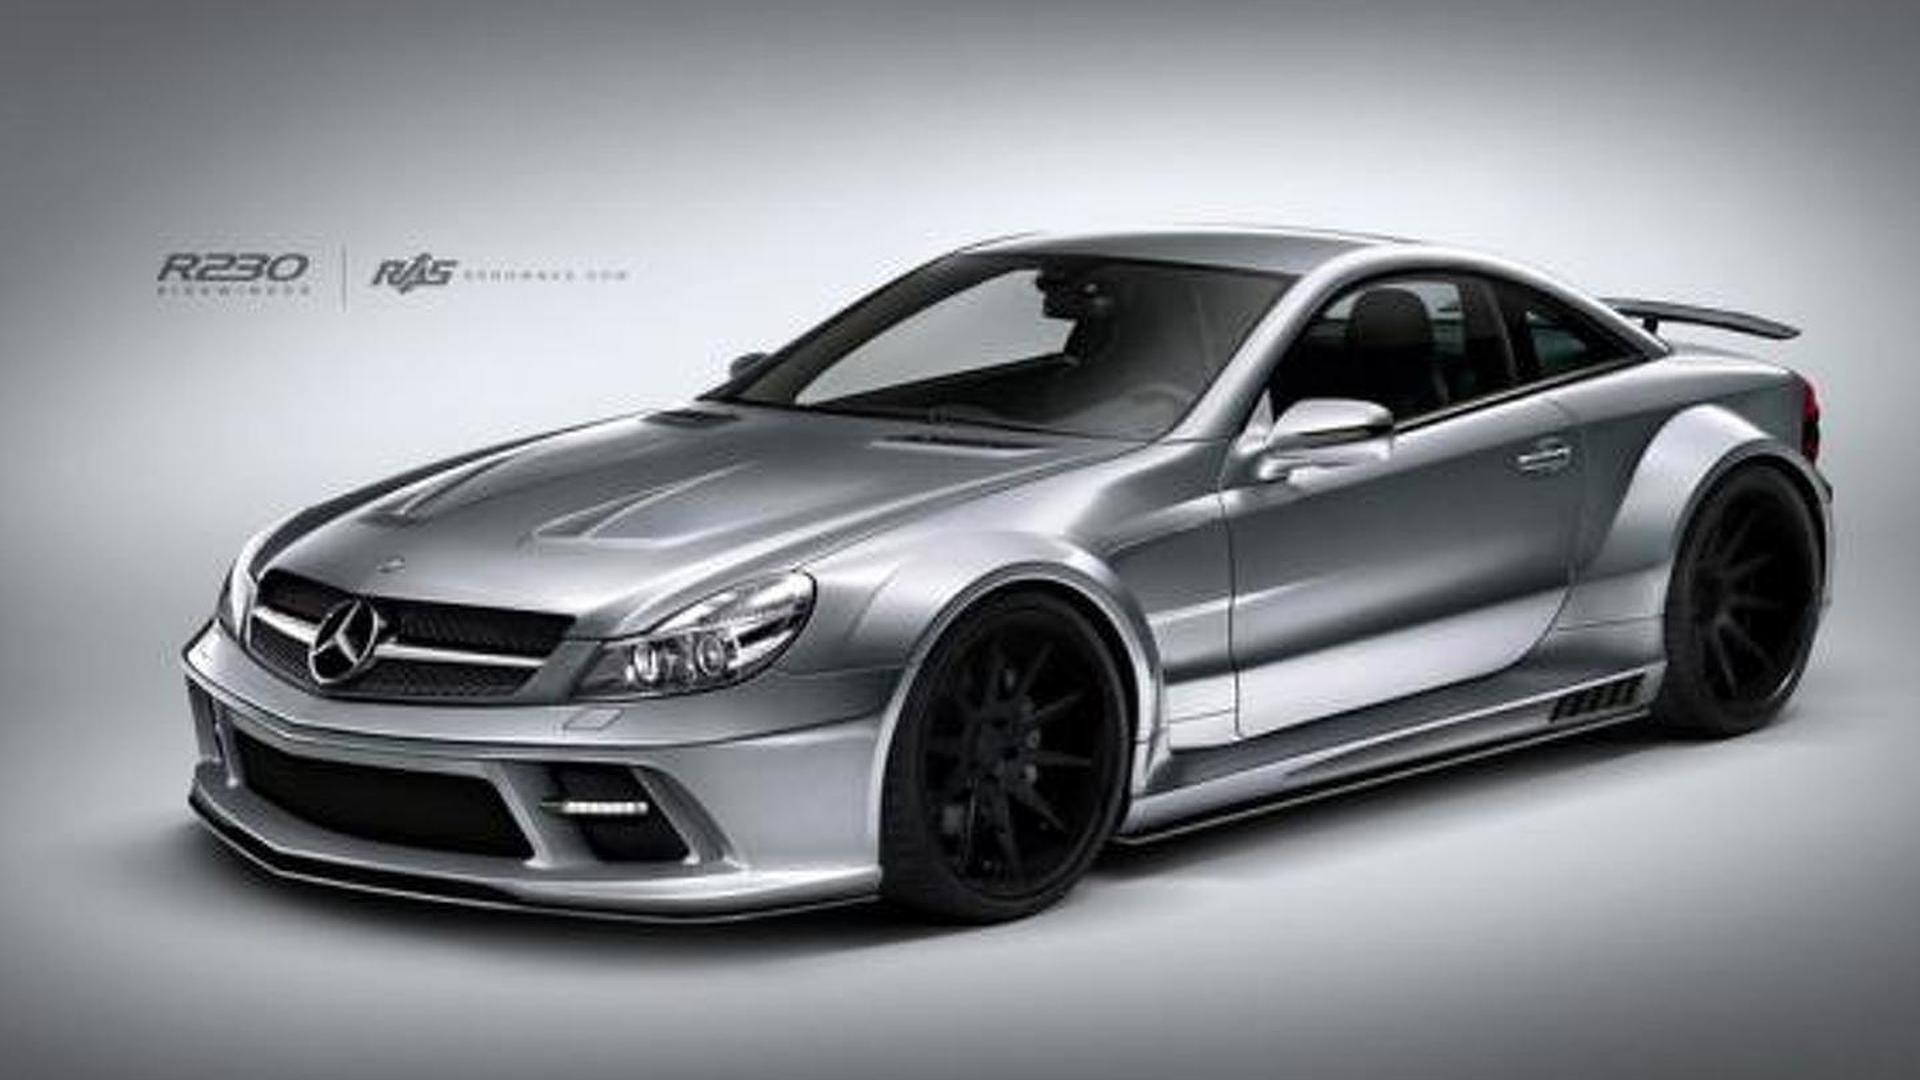 0c3997dc956dd4 Renown Auto Style launches body kit for previous Mercedes-Benz SL